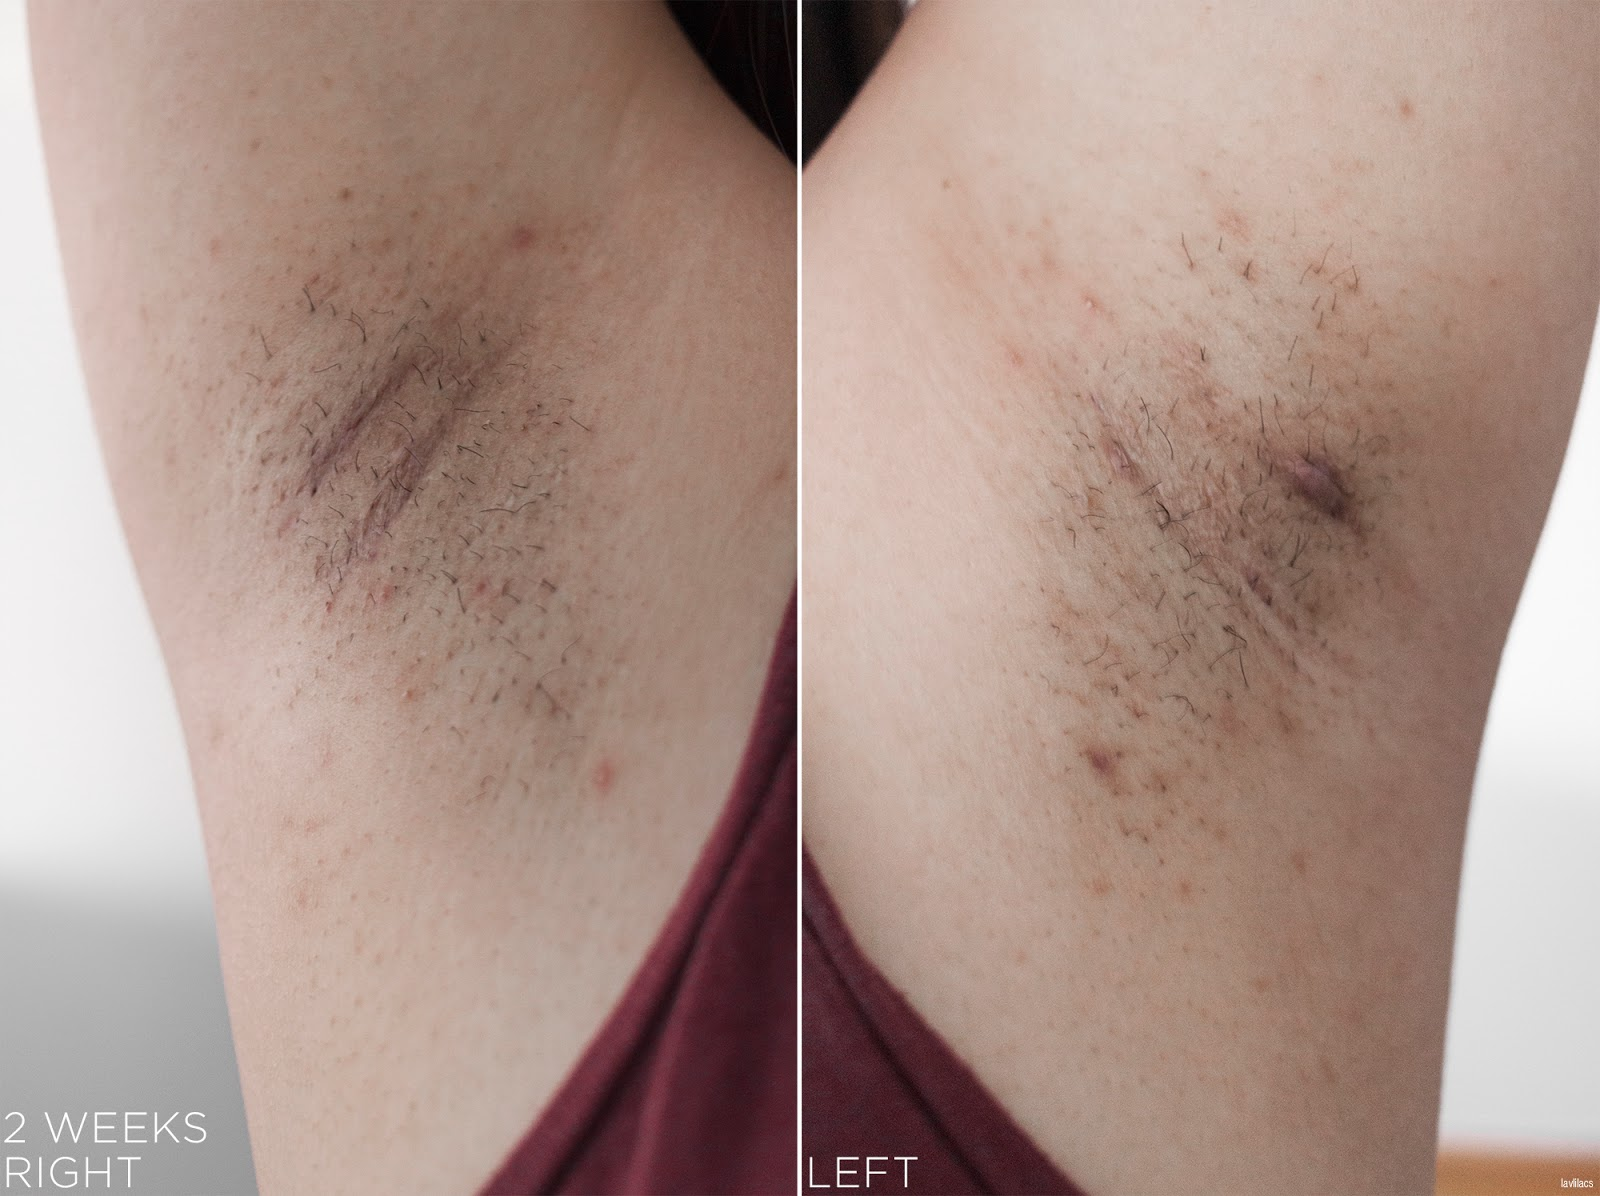 tria Hair Removal Laser Armpits Hair 2 Weeks